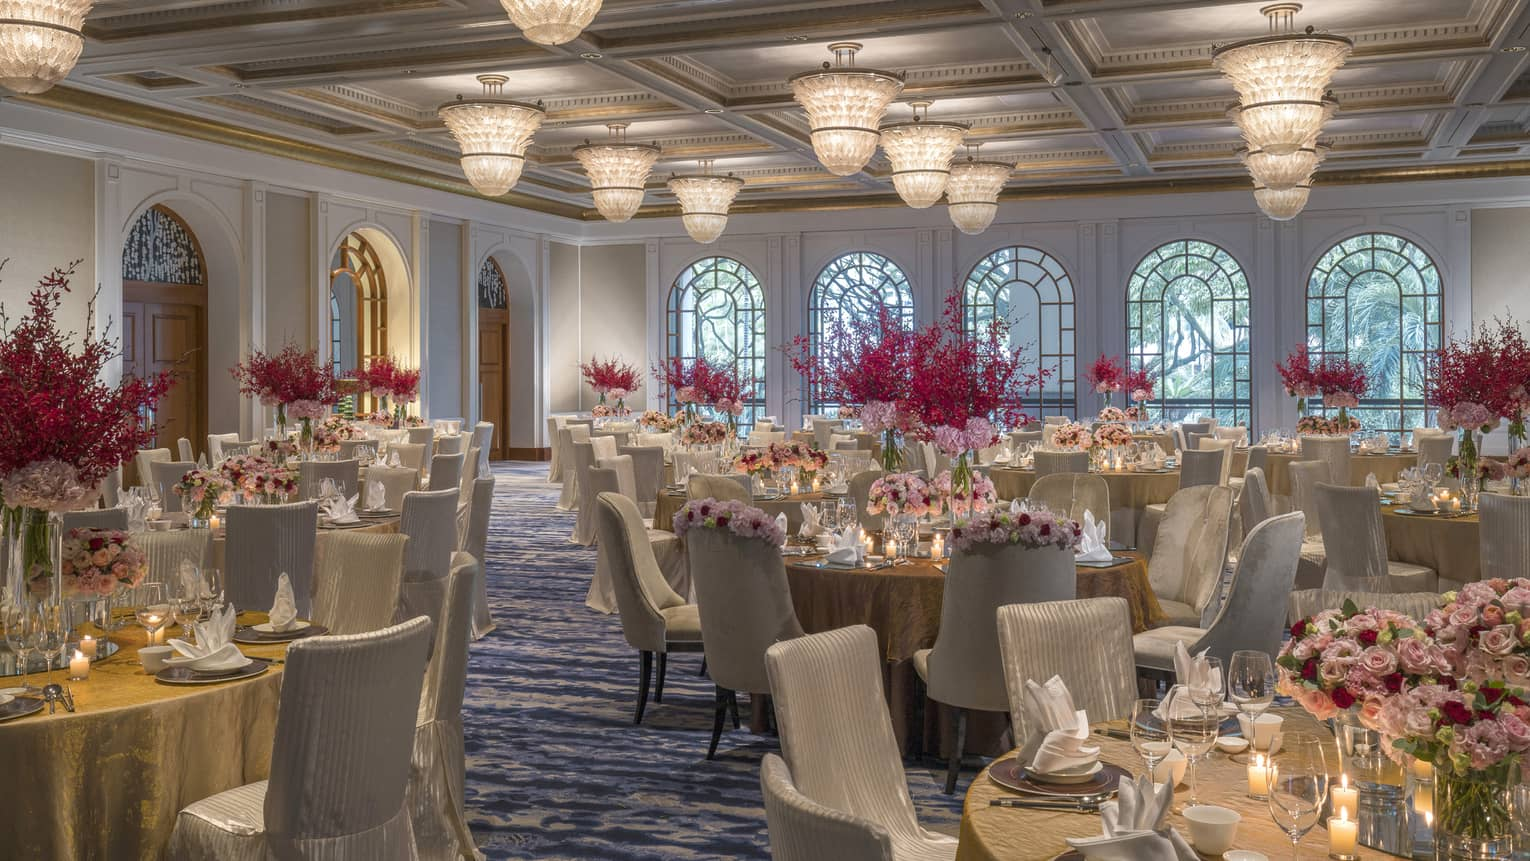 Circular tables are set for a meal and decorated with candles and pink and red bouquets